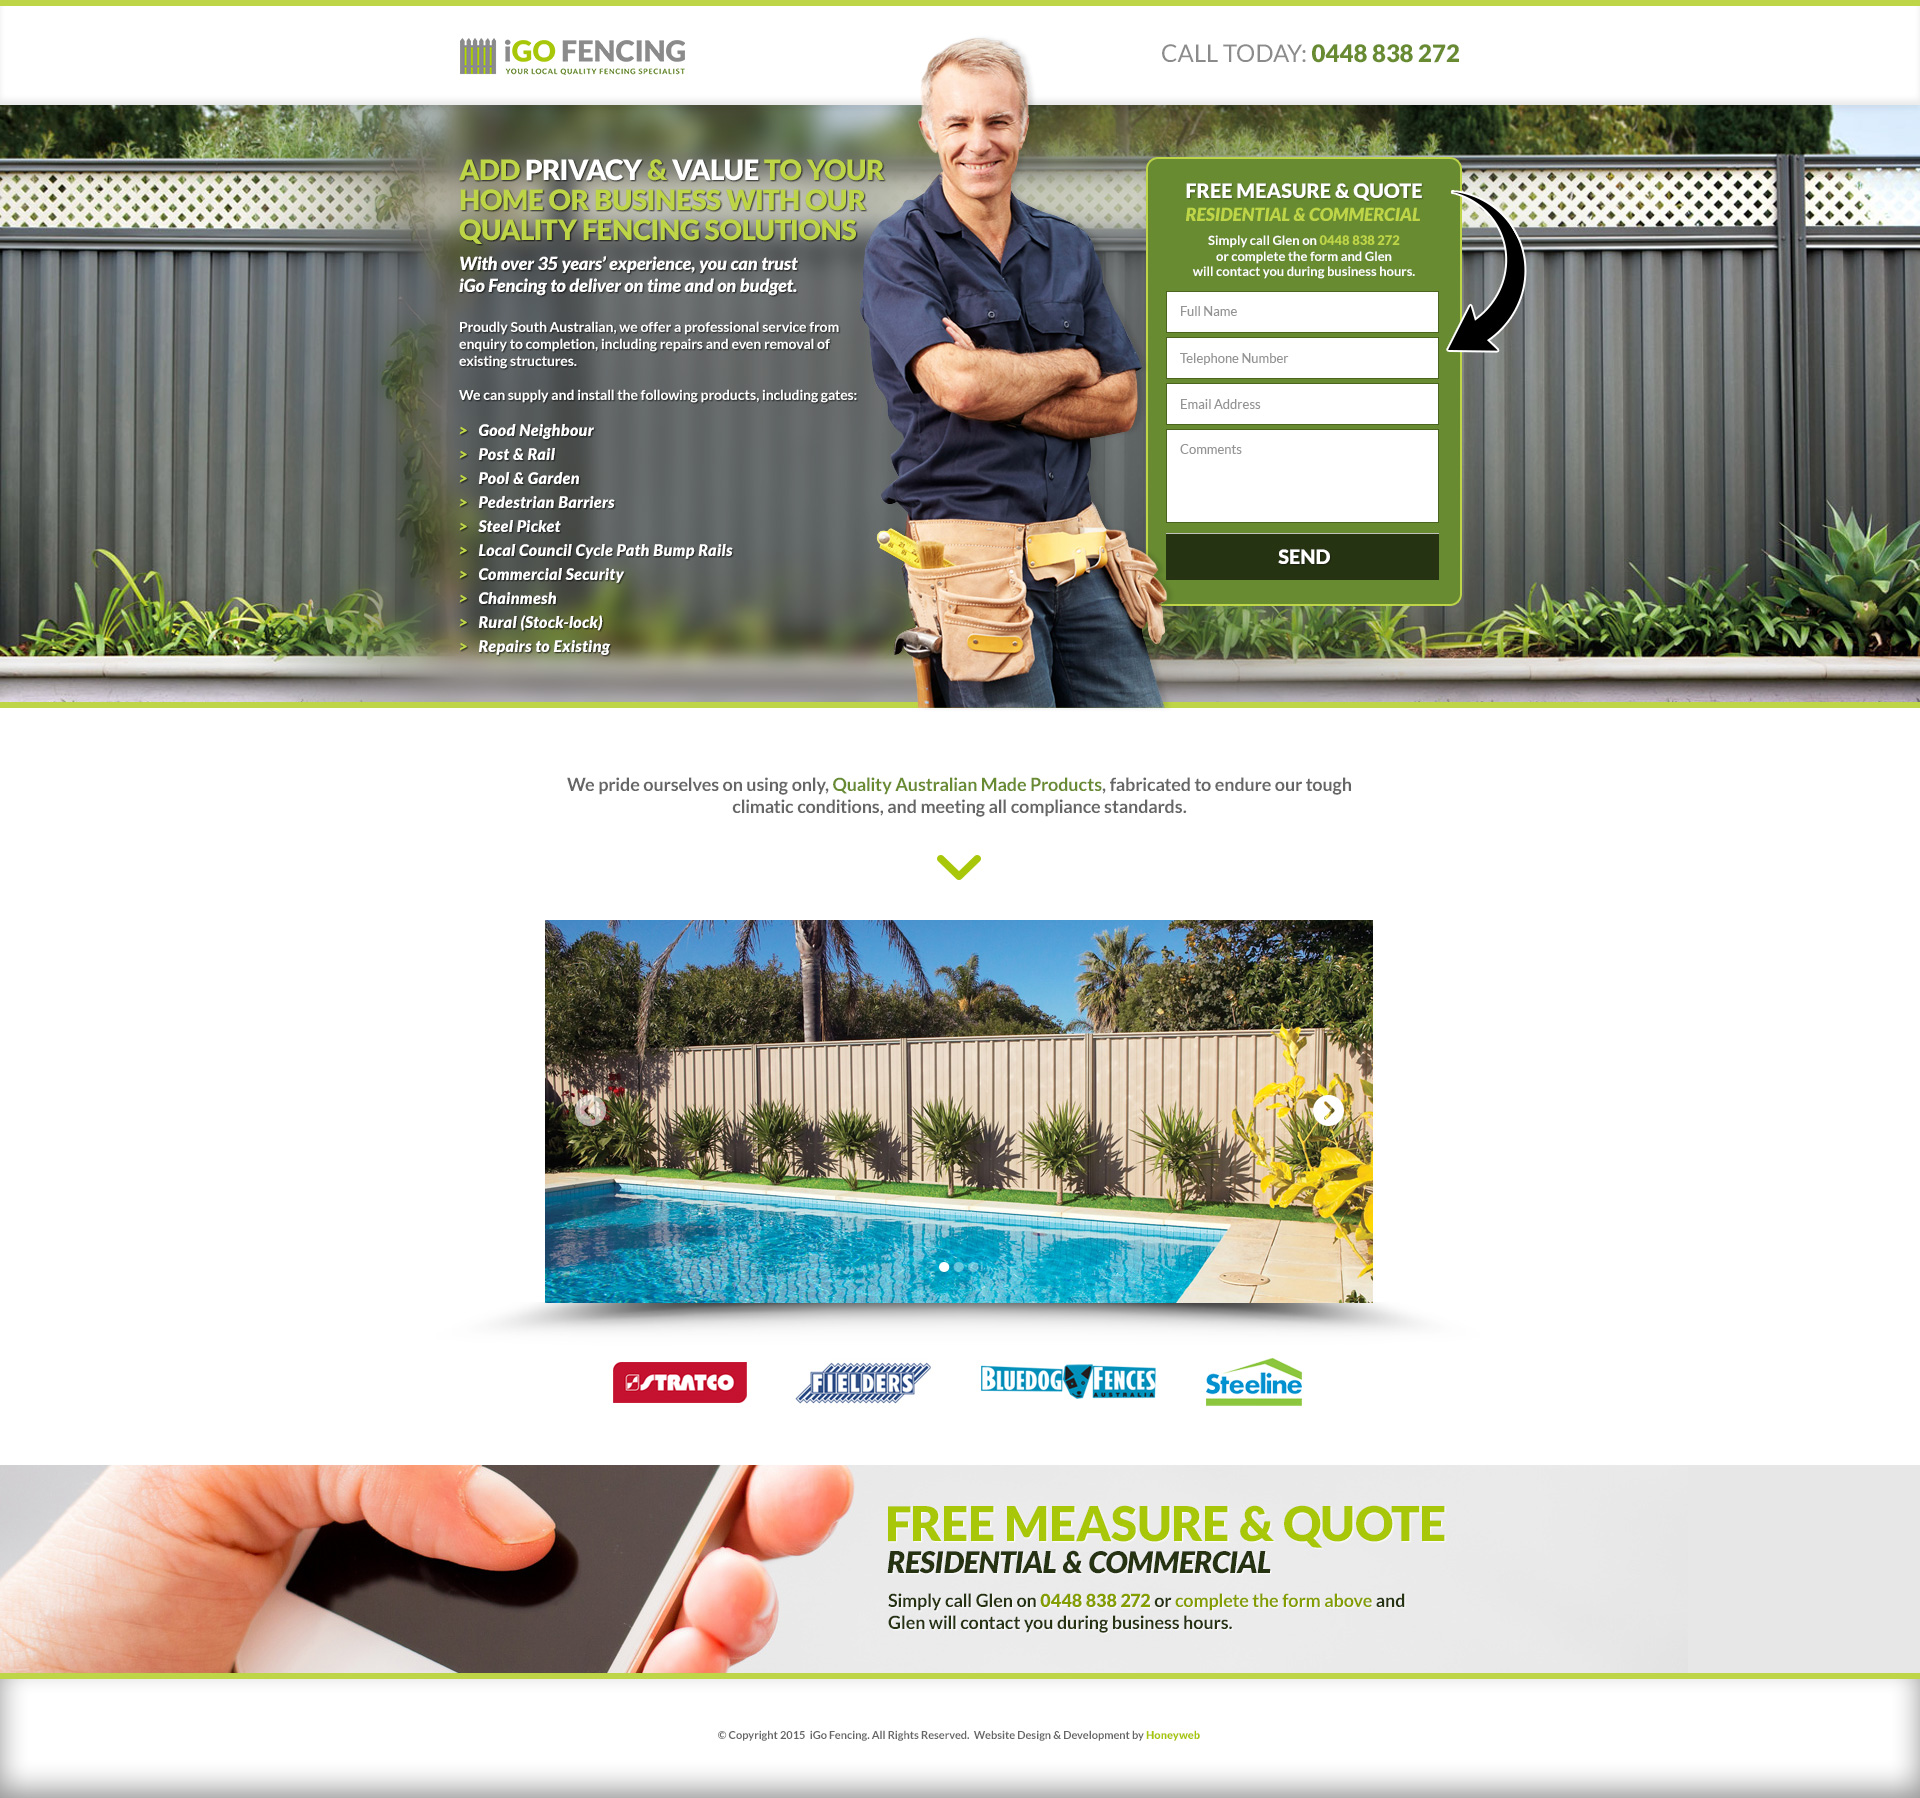 Check out the NEW iGo Fencing Landing Page Website Designed & Constructed by Honeyweb